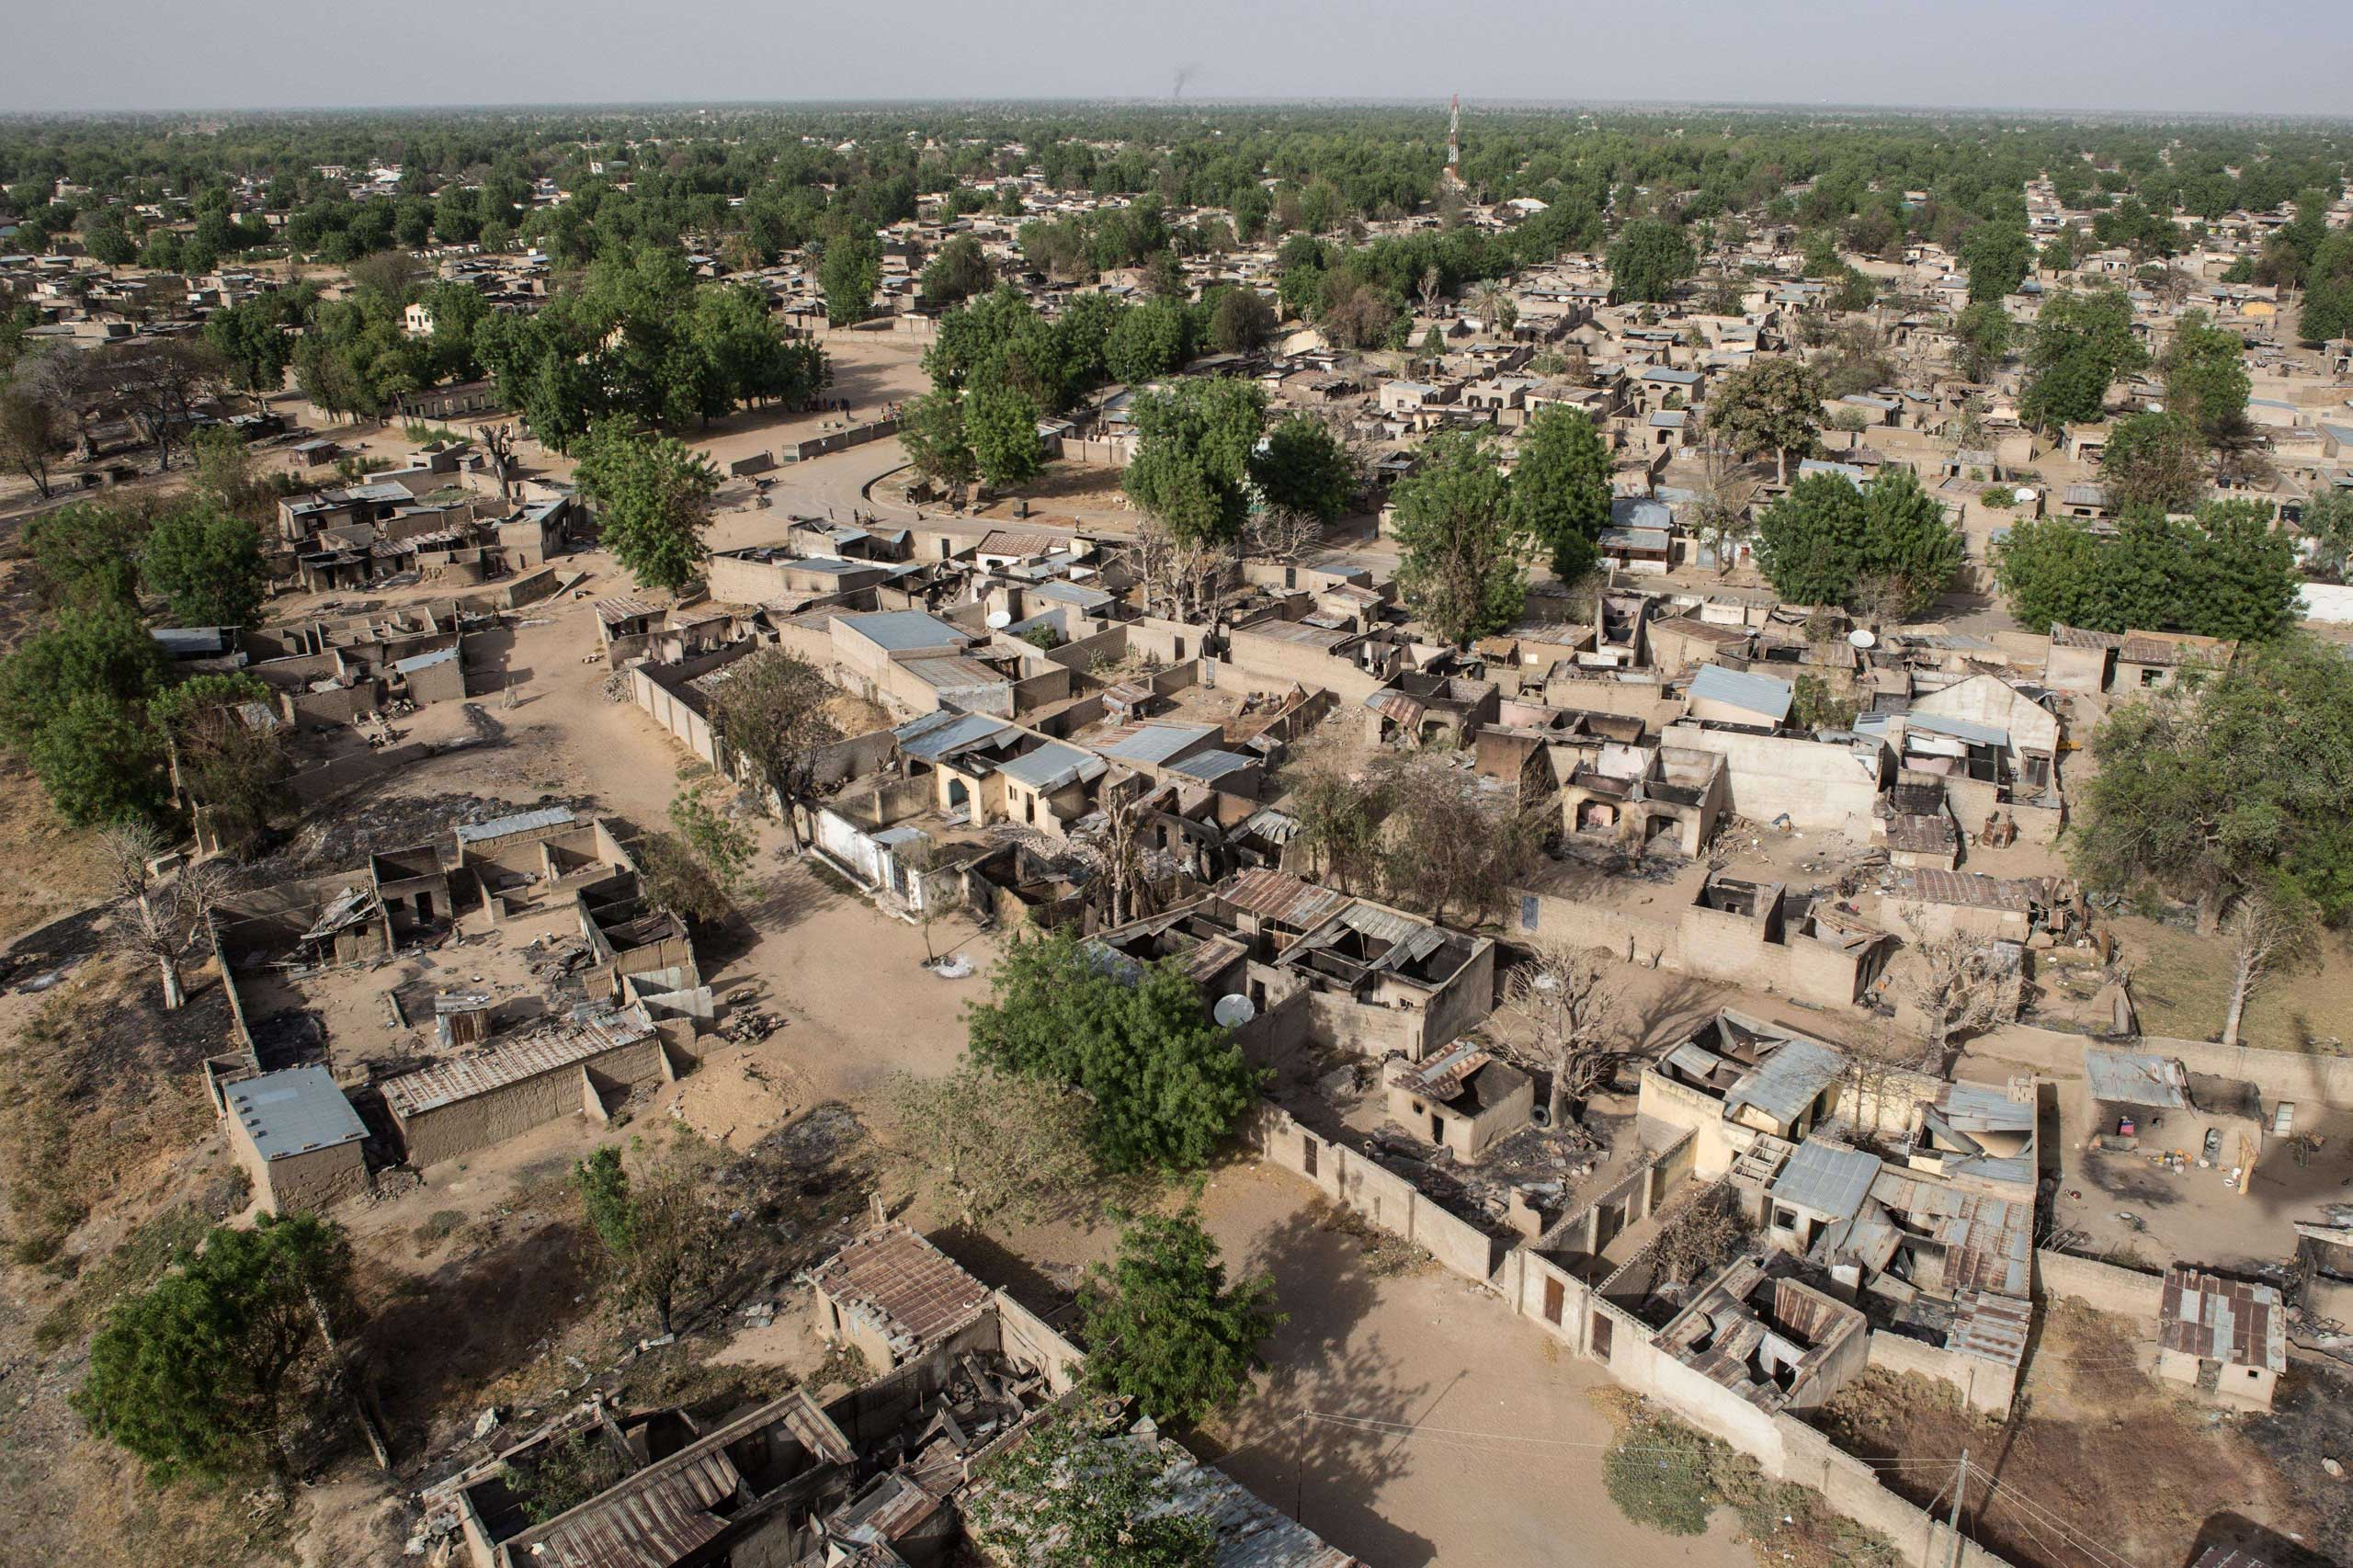 An aerial view of Bama, a northeastern town in Nigeria on March 25, 2015.